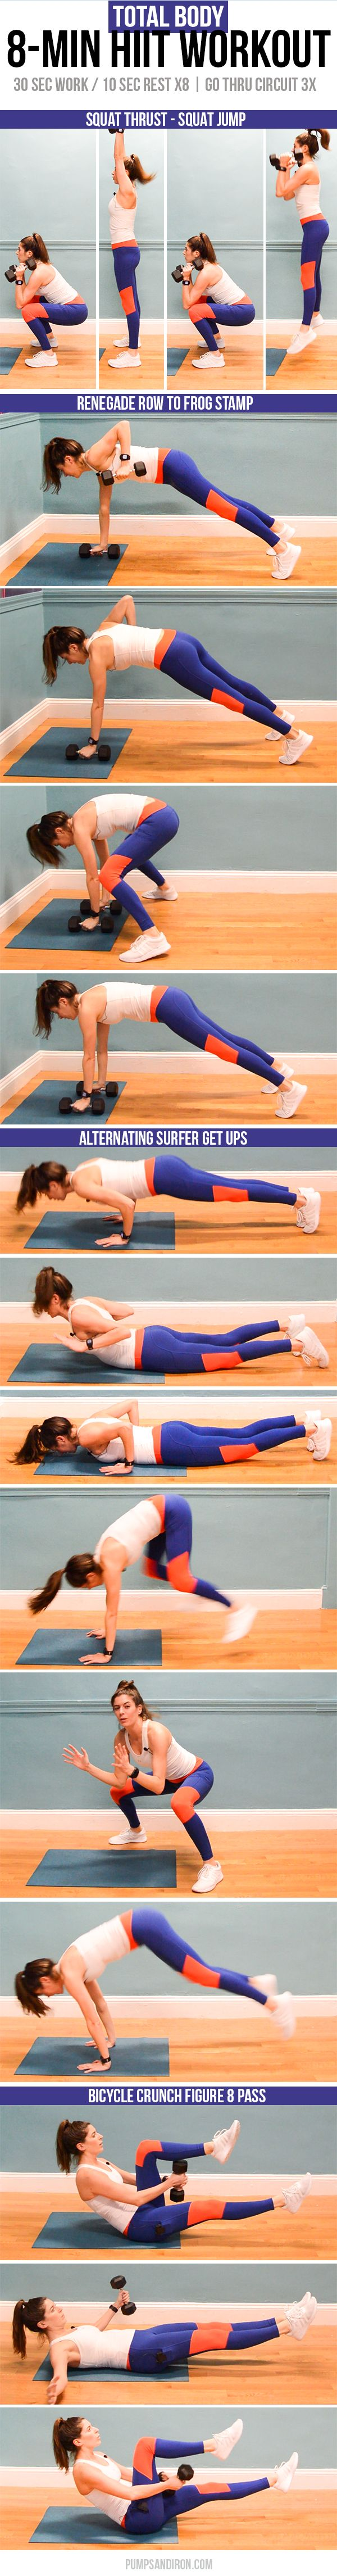 8-Min HIIT Workout   All you need is a set of weights for this quick full-body interval workout (video included)